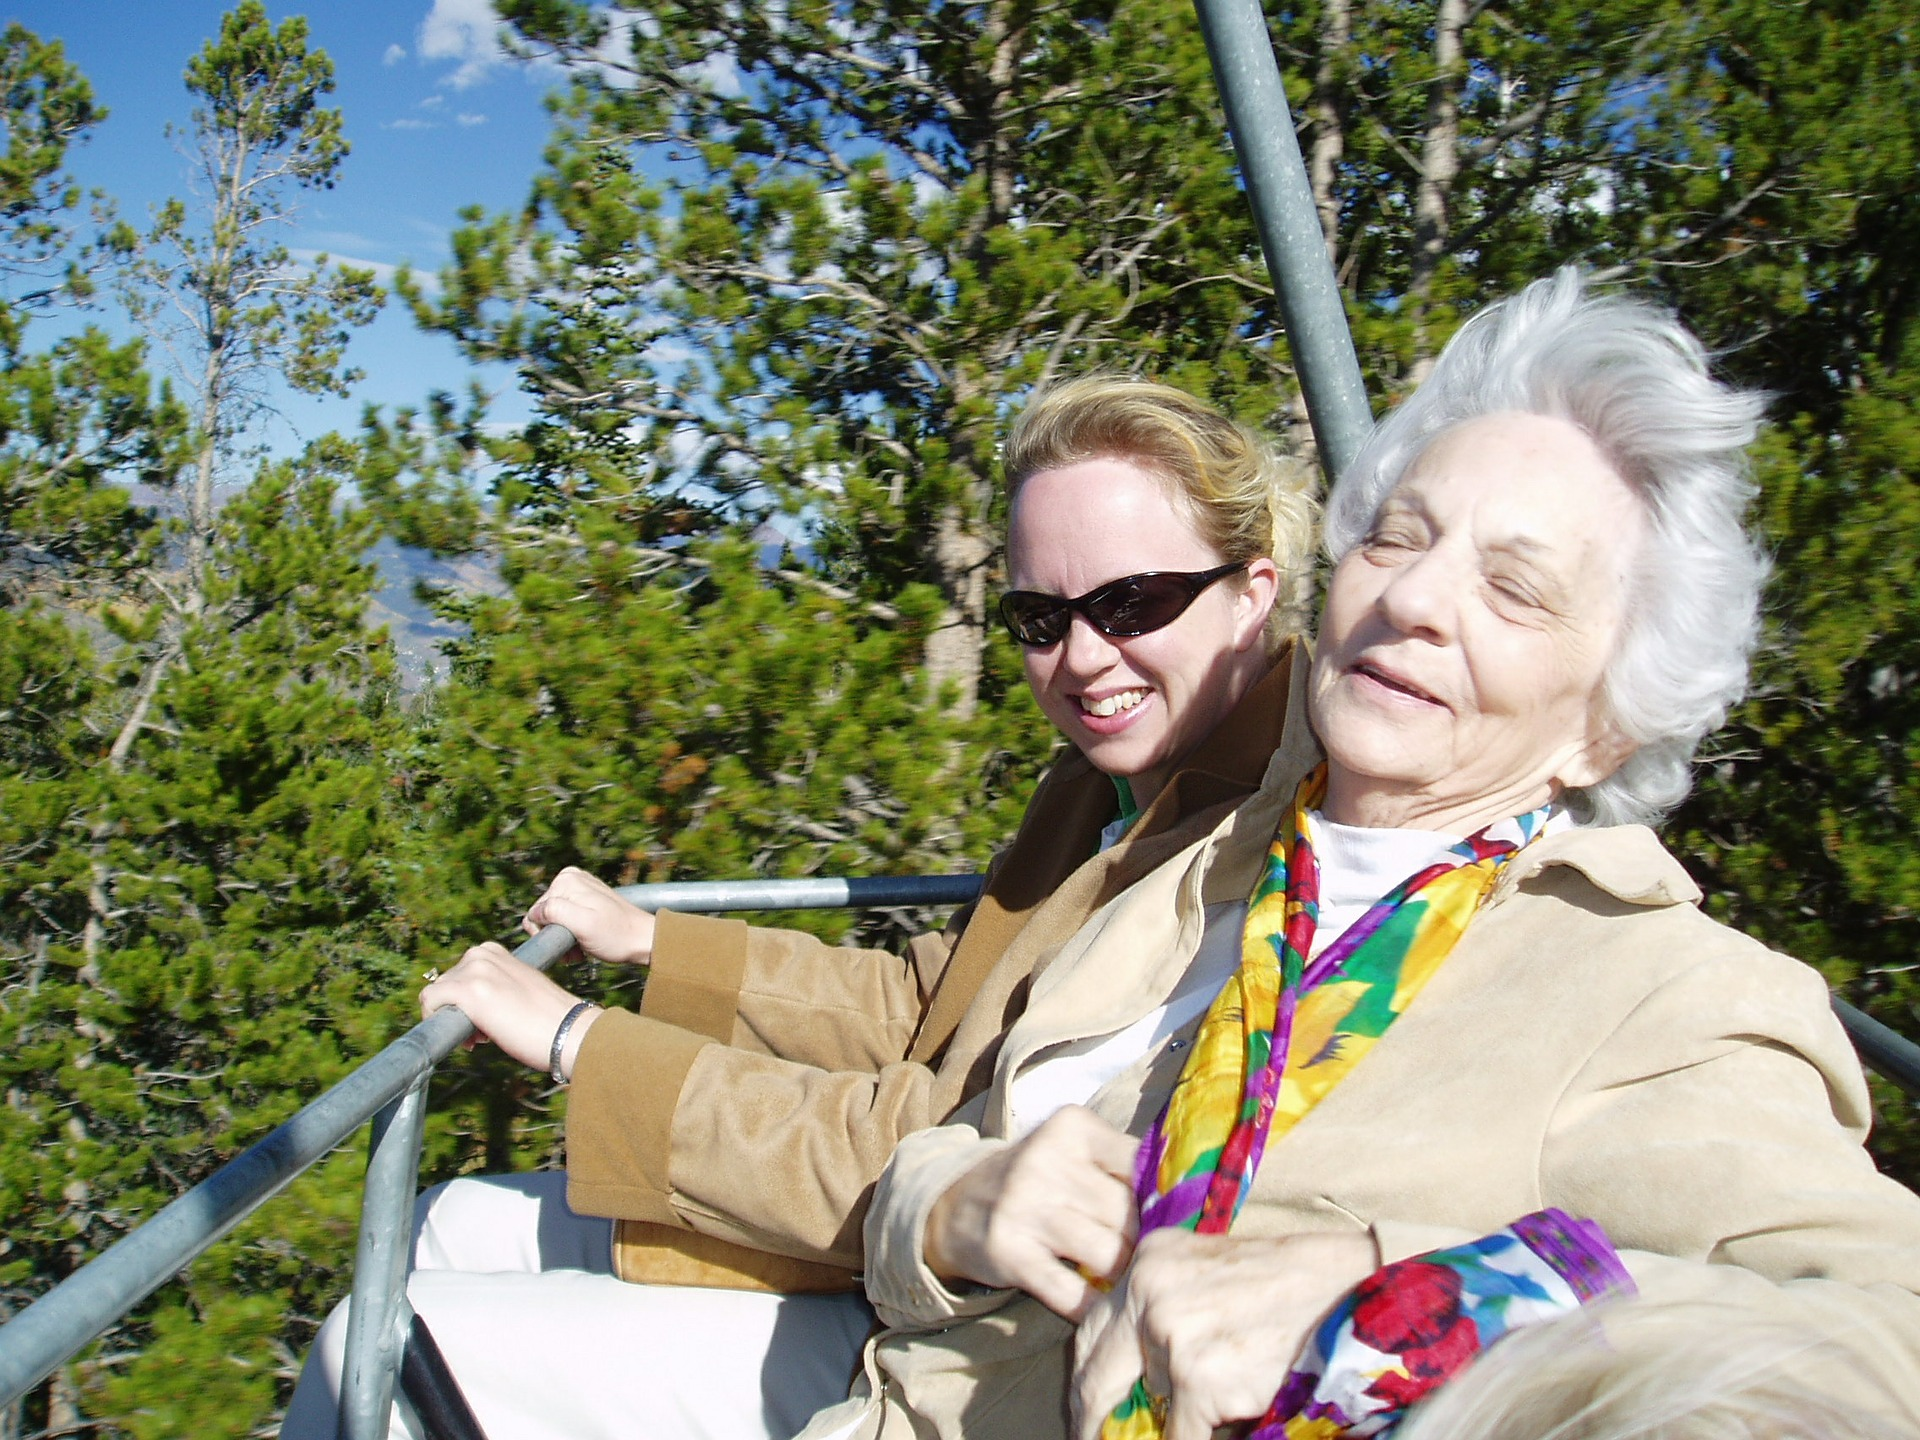 older woman on a ride with her family caregiver